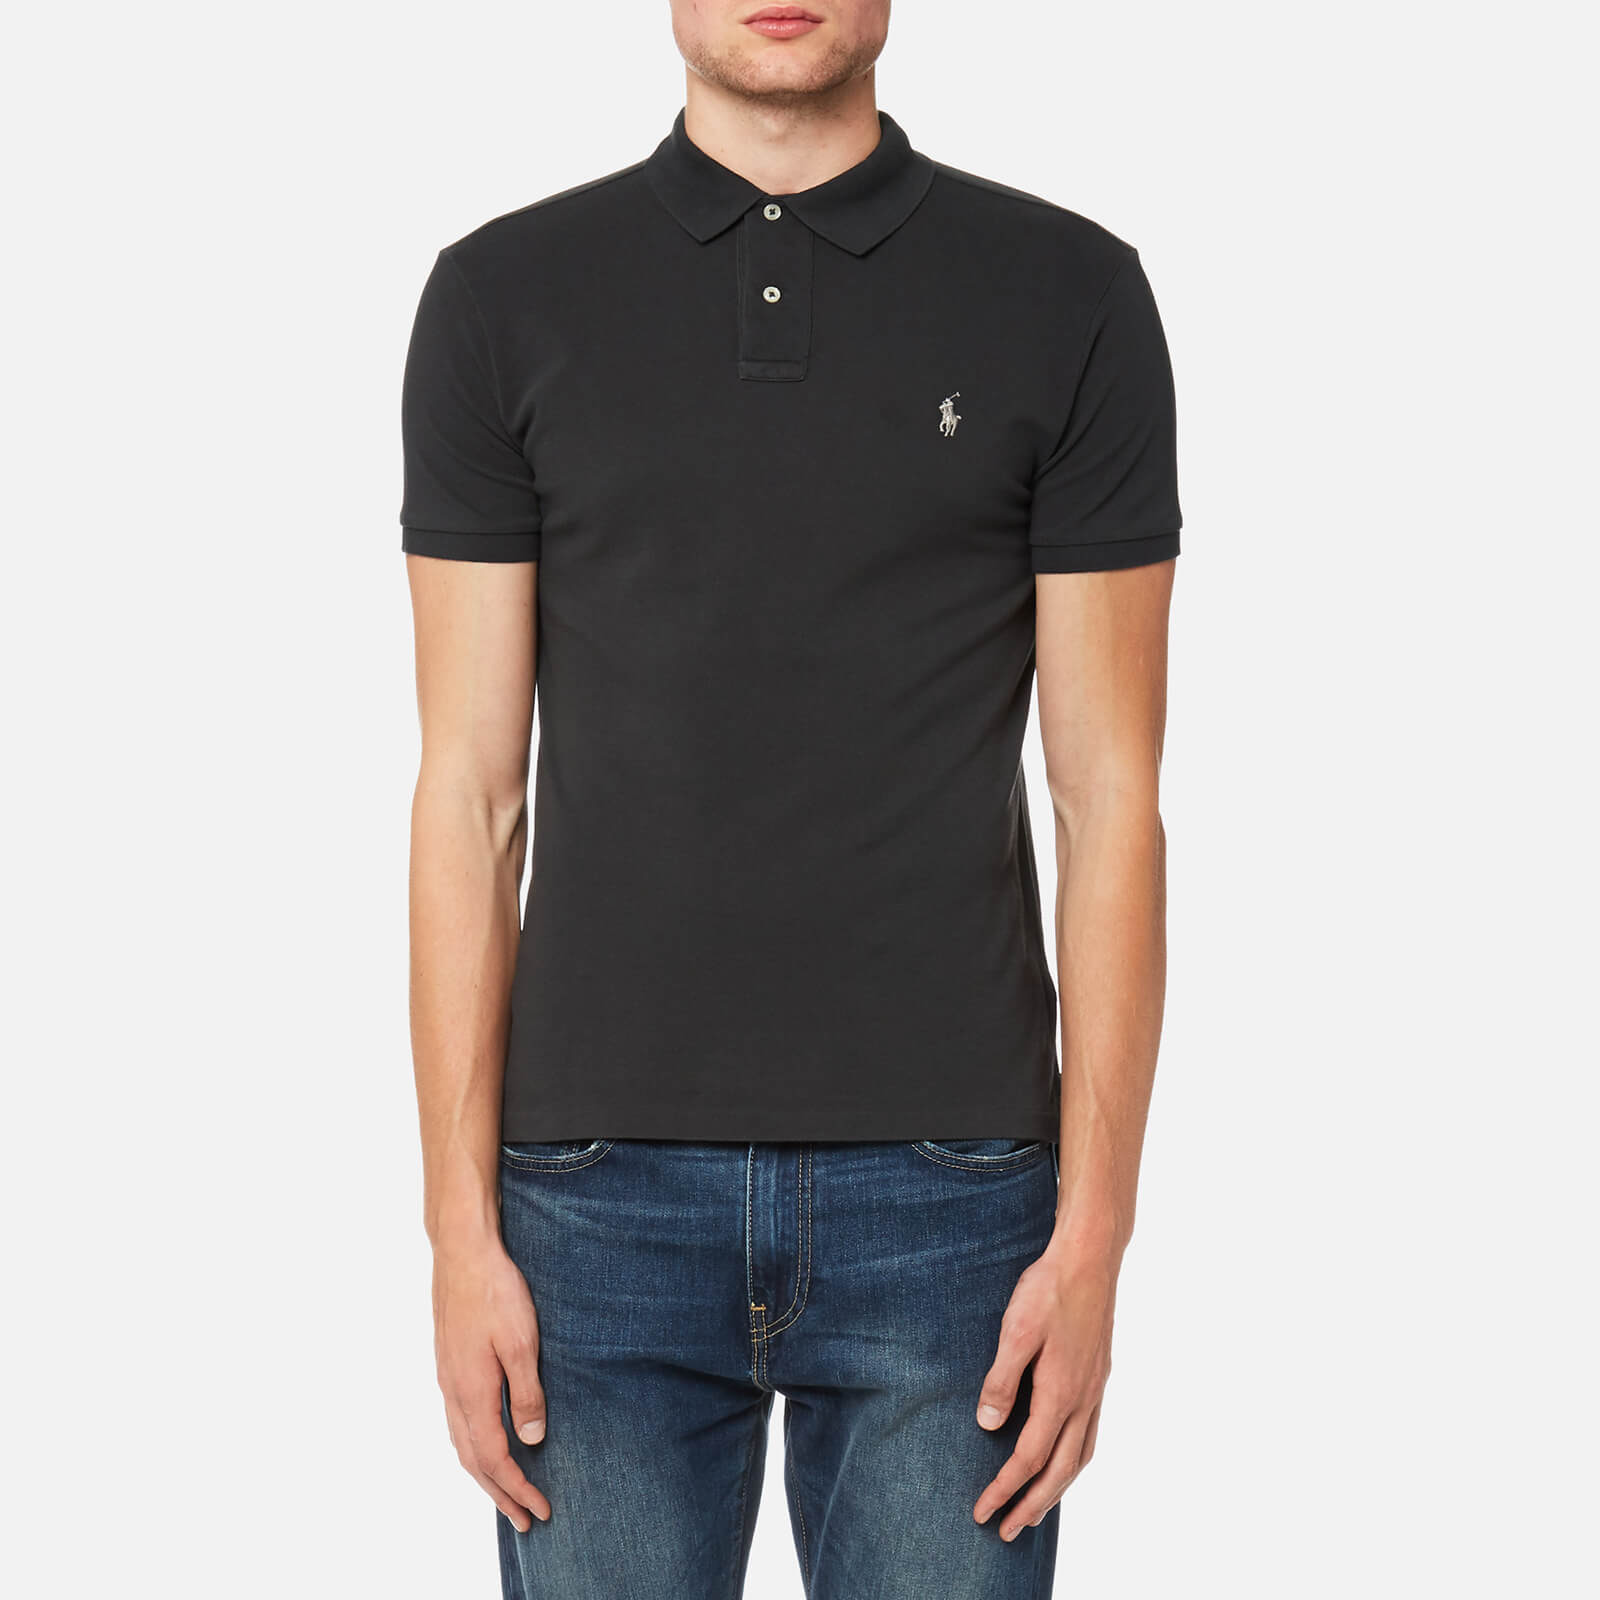 a61d8d320 Polo Ralph Lauren Men's Slim Fit Mesh Polo Shirt - Dark Carbon Grey - Free  UK Delivery over £50